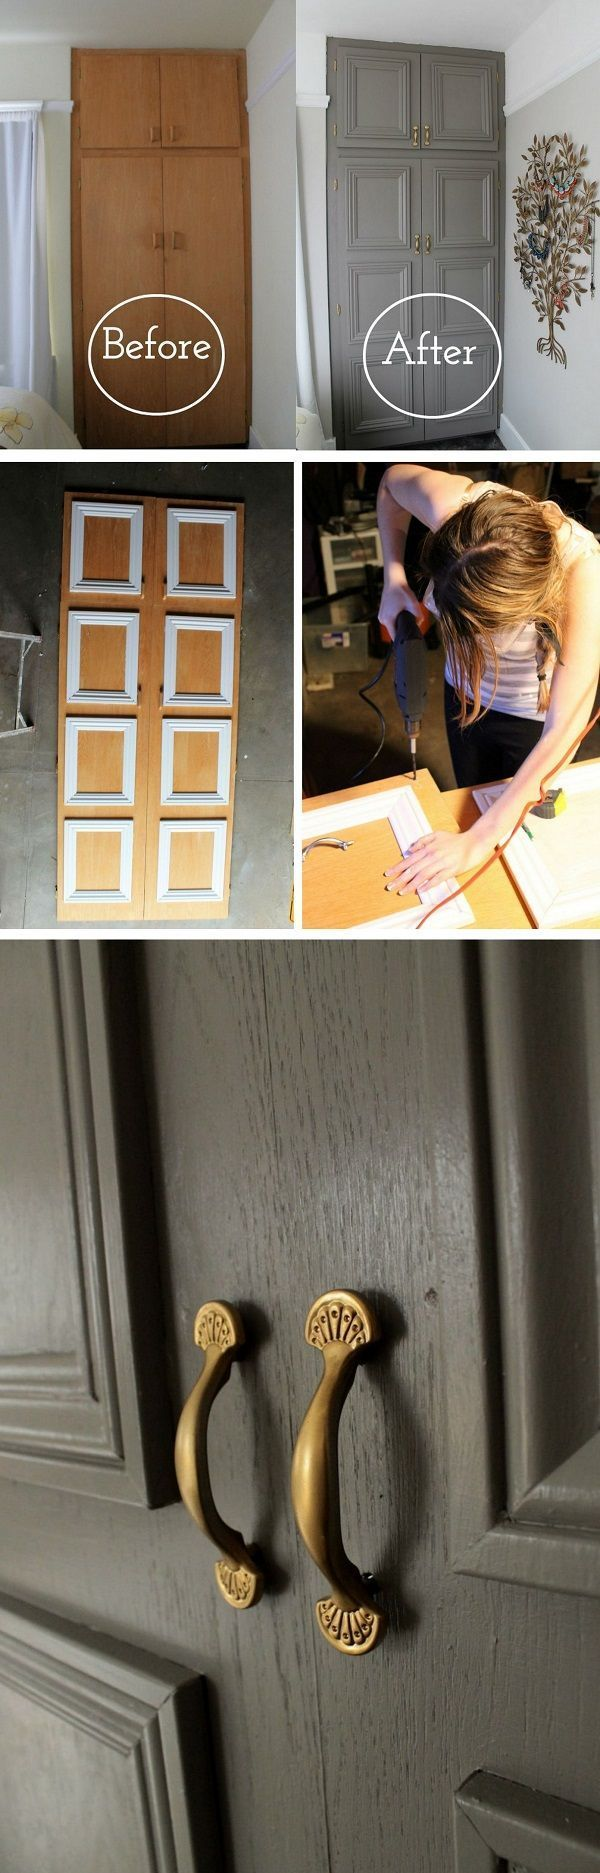 16 Simple DIY Door Projects for Stunning Home Decor on a Budget - How to Make a #DI